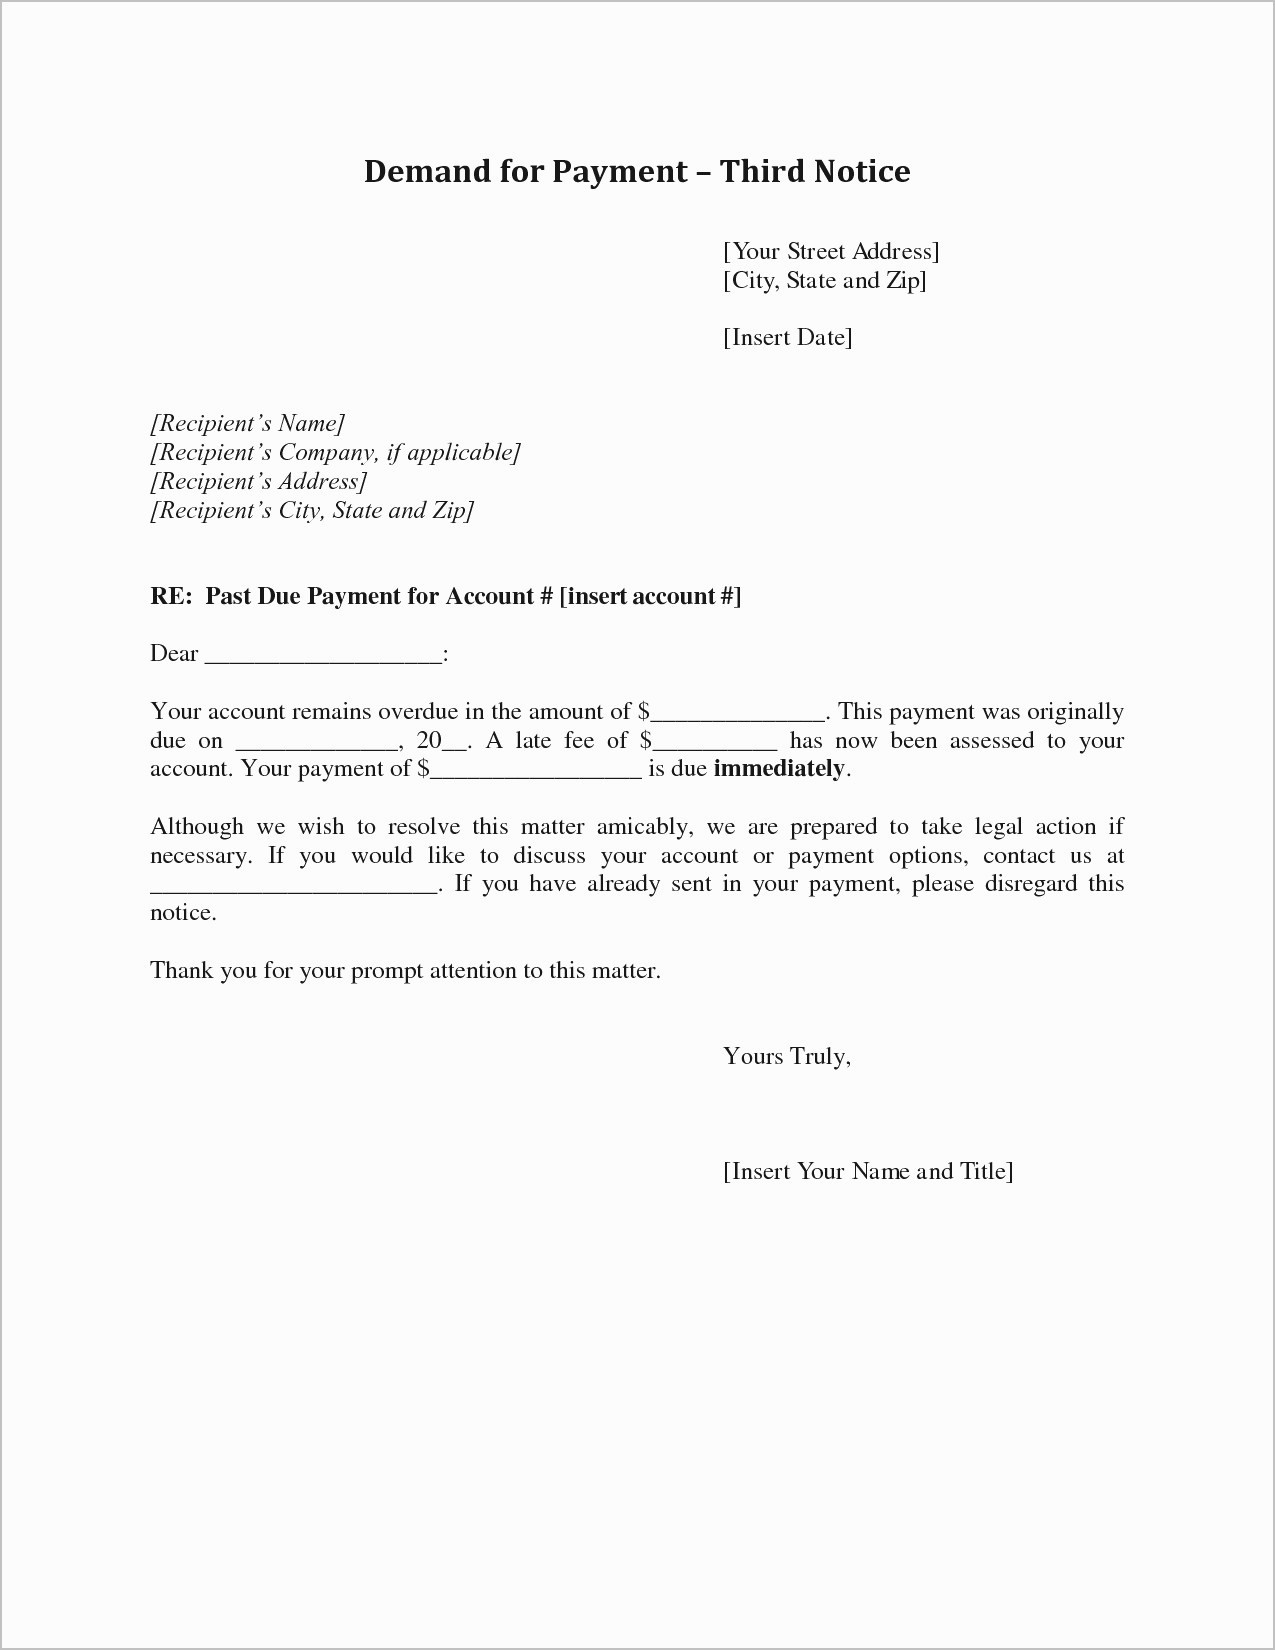 Rental Offer Letter Template - Homeowners Insurance Non Renewal Letter Unique Sample Demand Letter